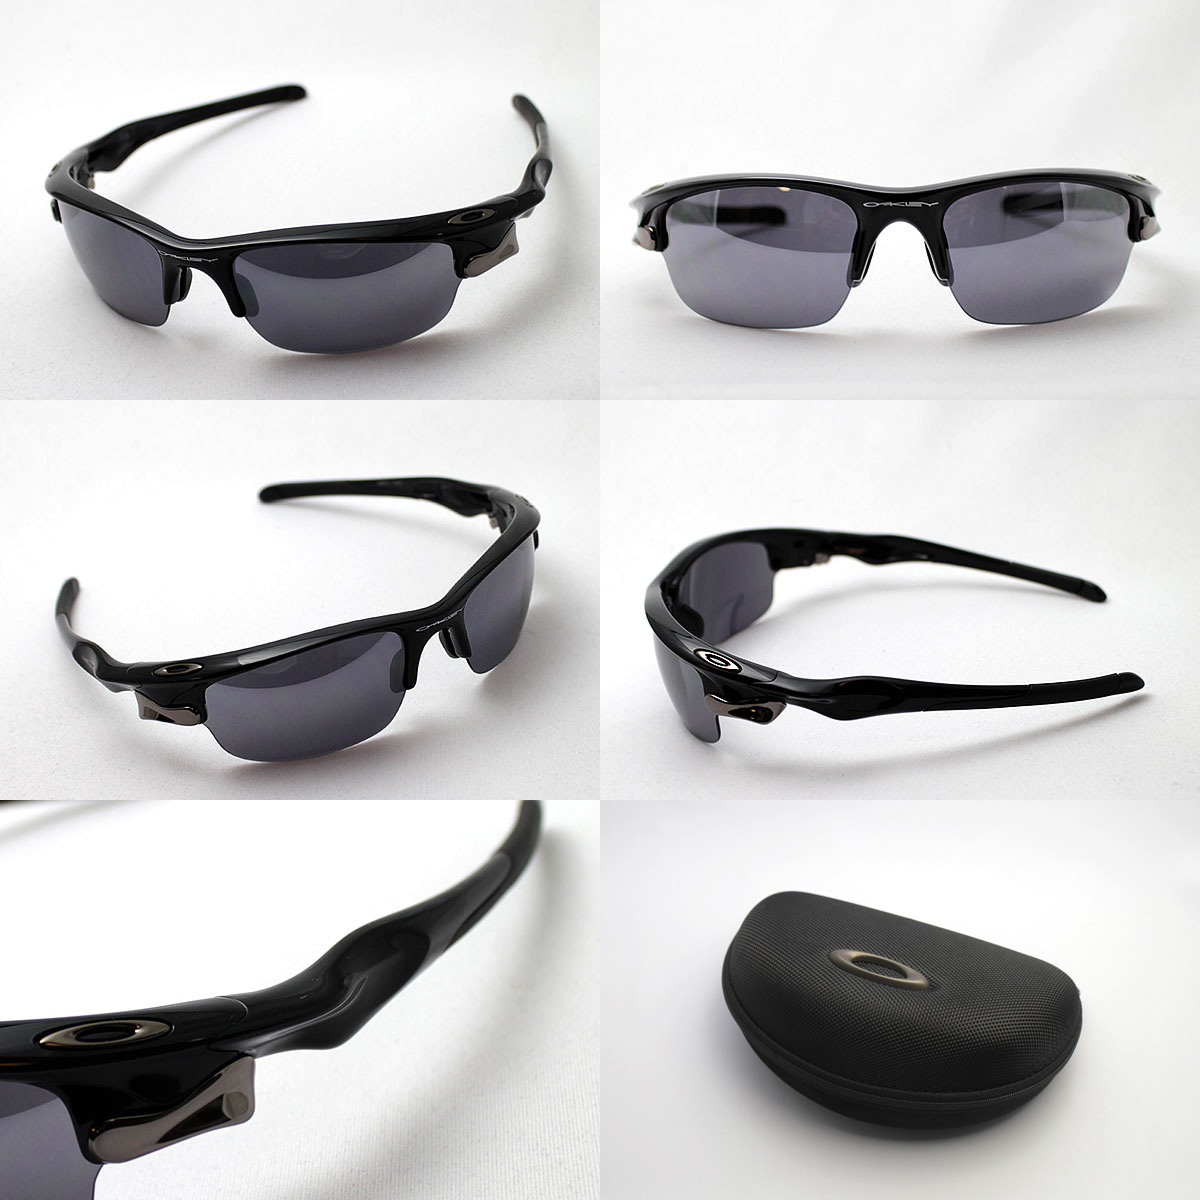 fast jacket oakley sunglasses kh9h  oo9097-01 Oakley Sunglasses fast jacket OAKLEY FAST JACKET SPORT black  series ladies ' men's